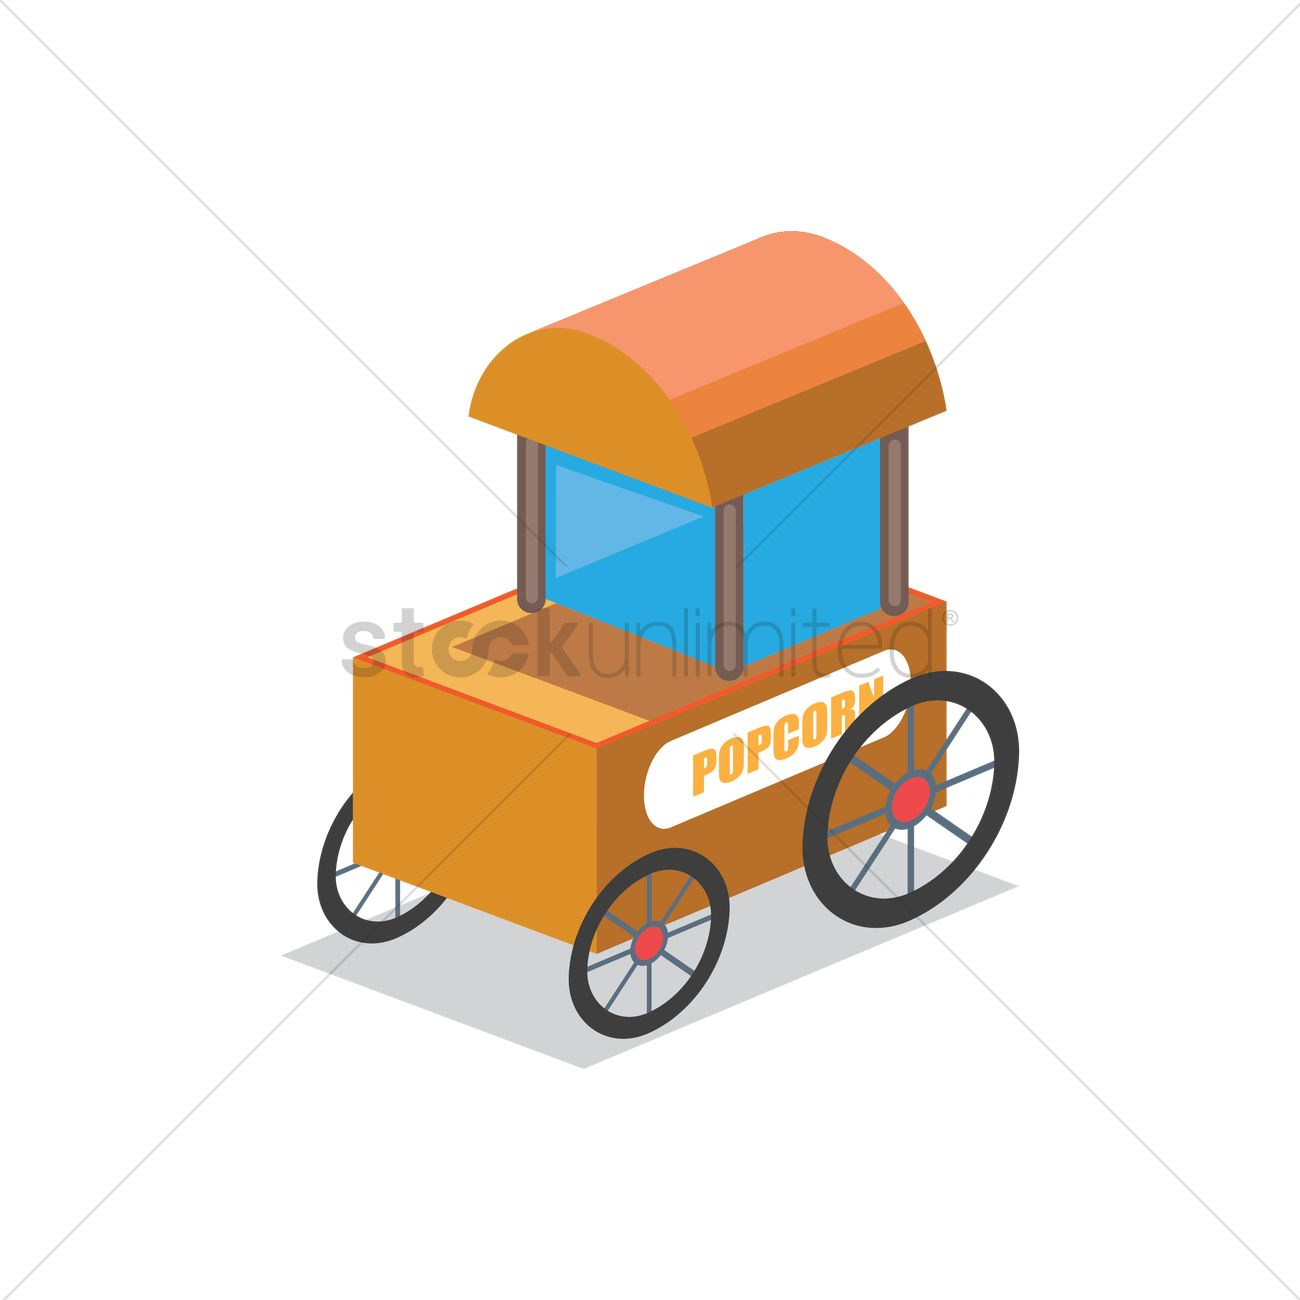 Popcorn cart Vector Image - 1601600 | StockUnlimited